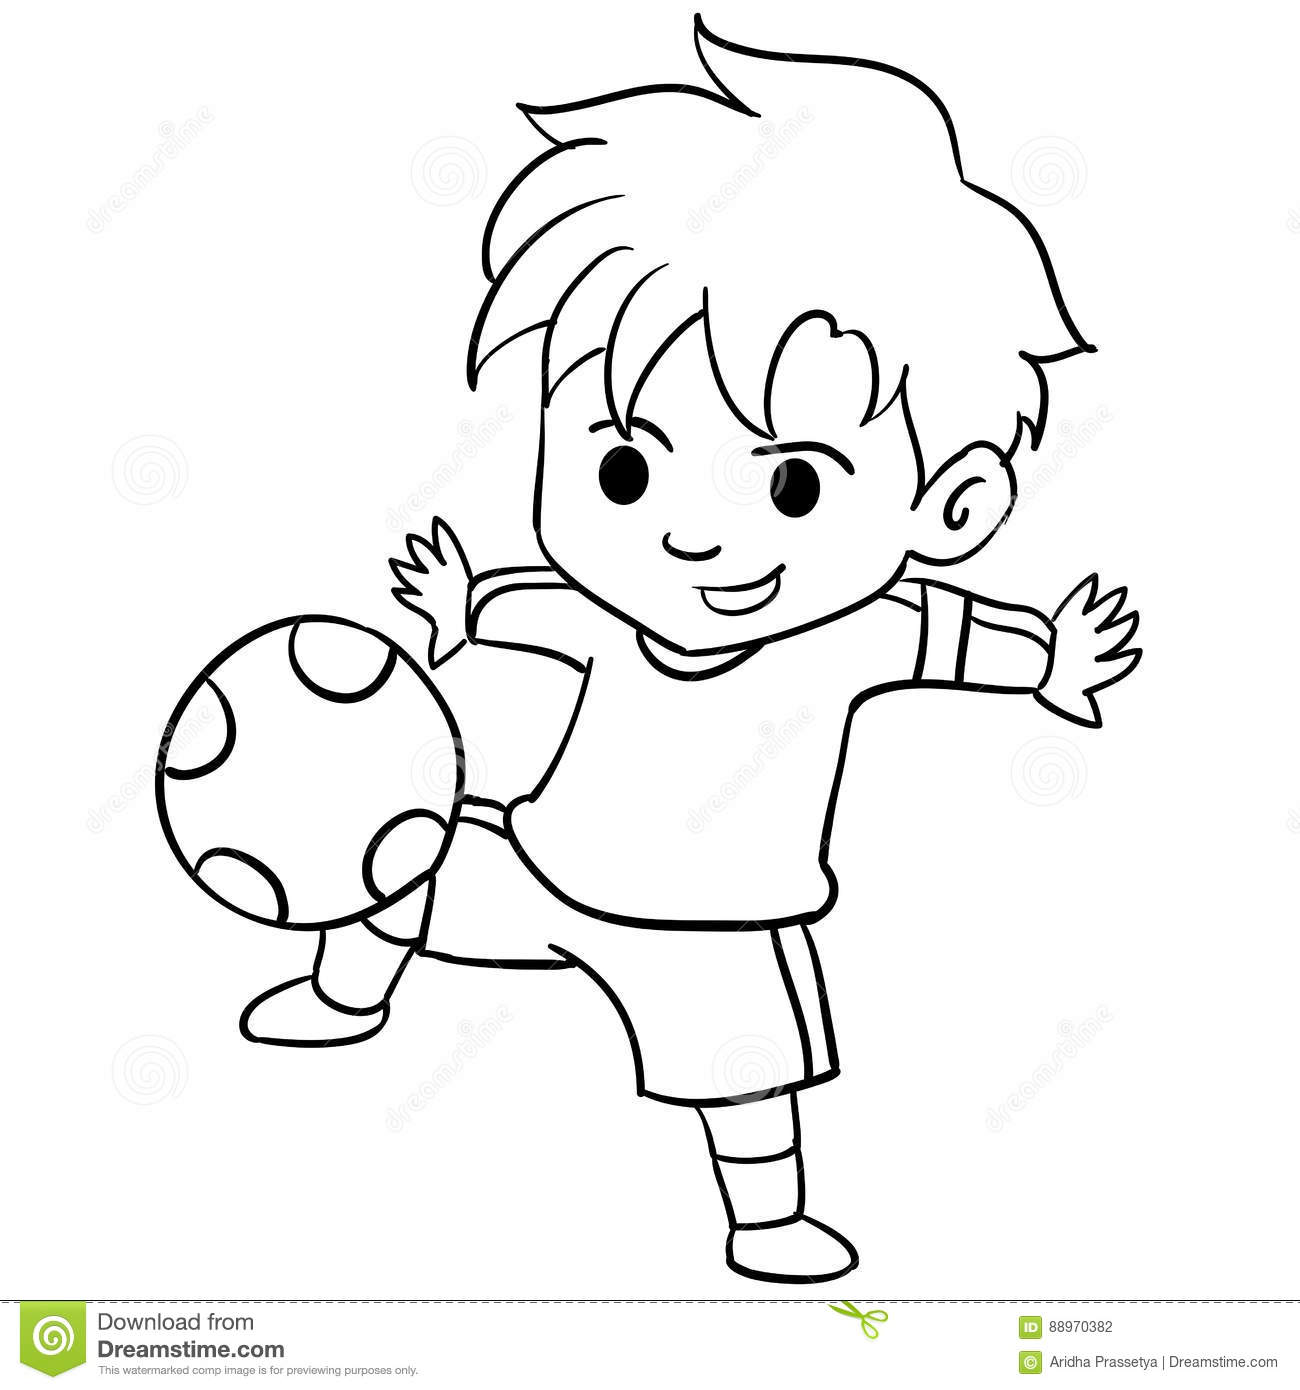 Collection Of Kid Playing Football Stock Vector Illustration Of Childlike Cartoon 88970382